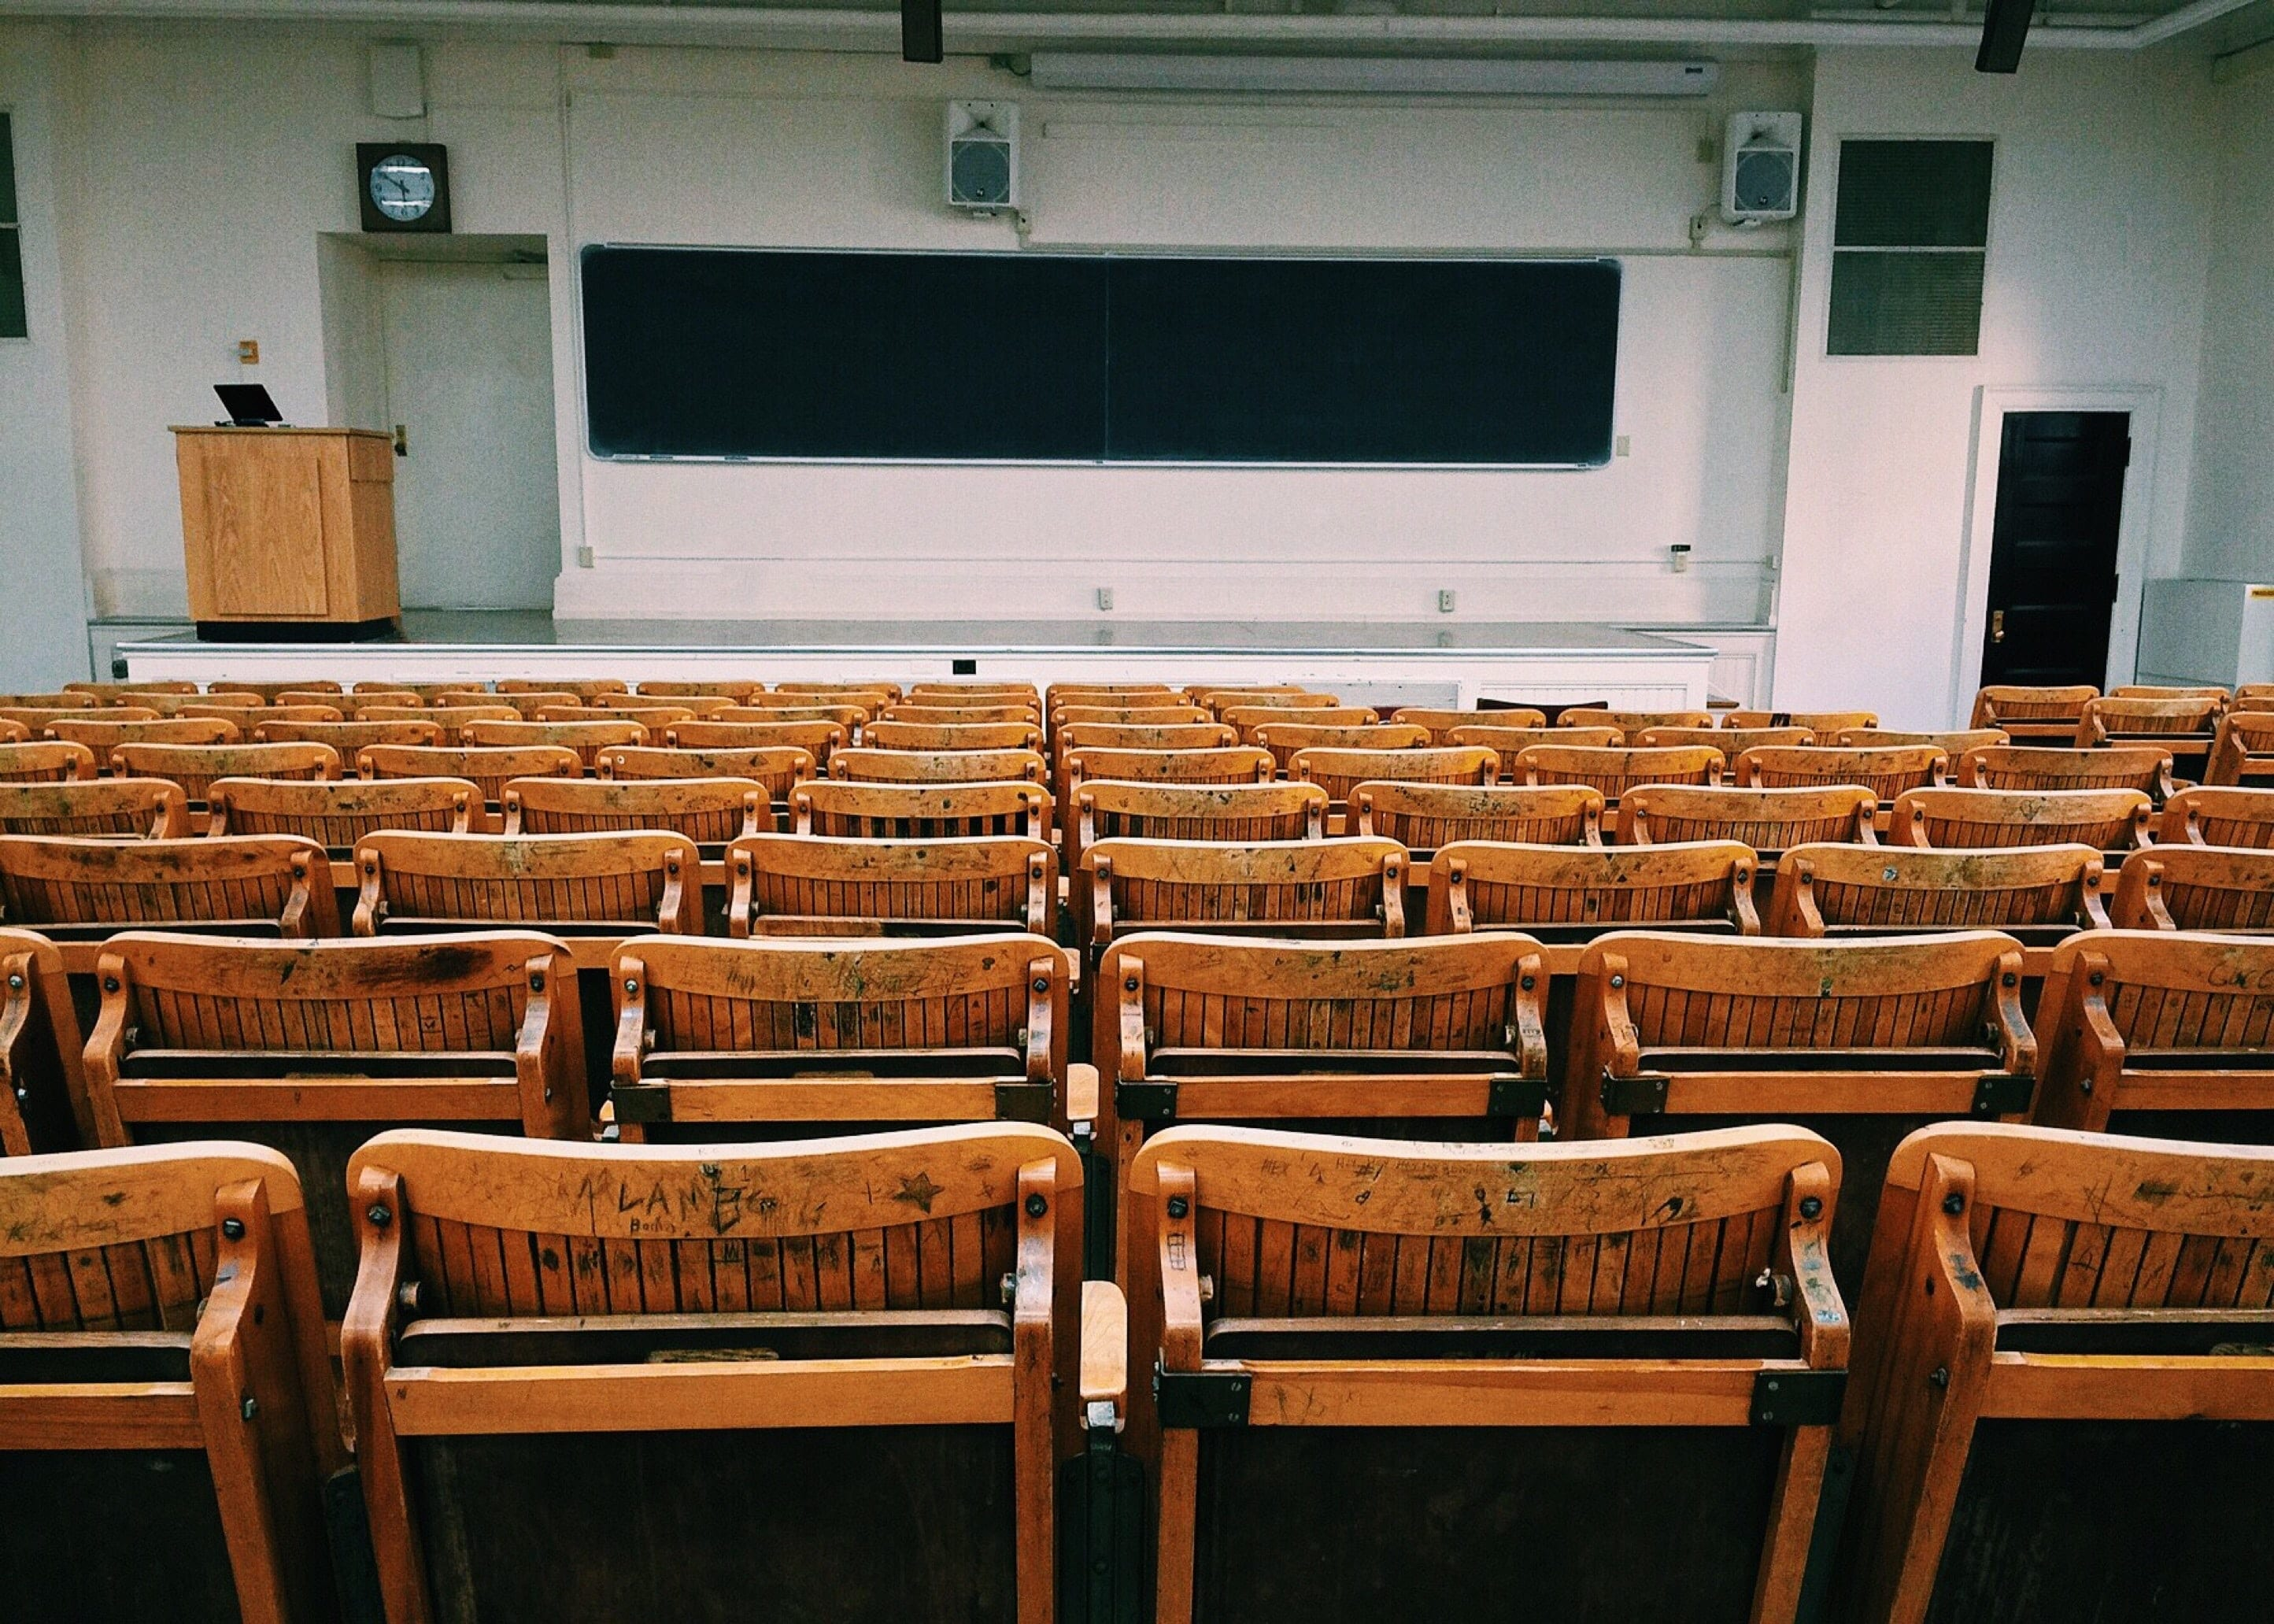 Empty classroom with chairs facing chalkboard; image by Pixabay.com, via Pexels.com, CC0.